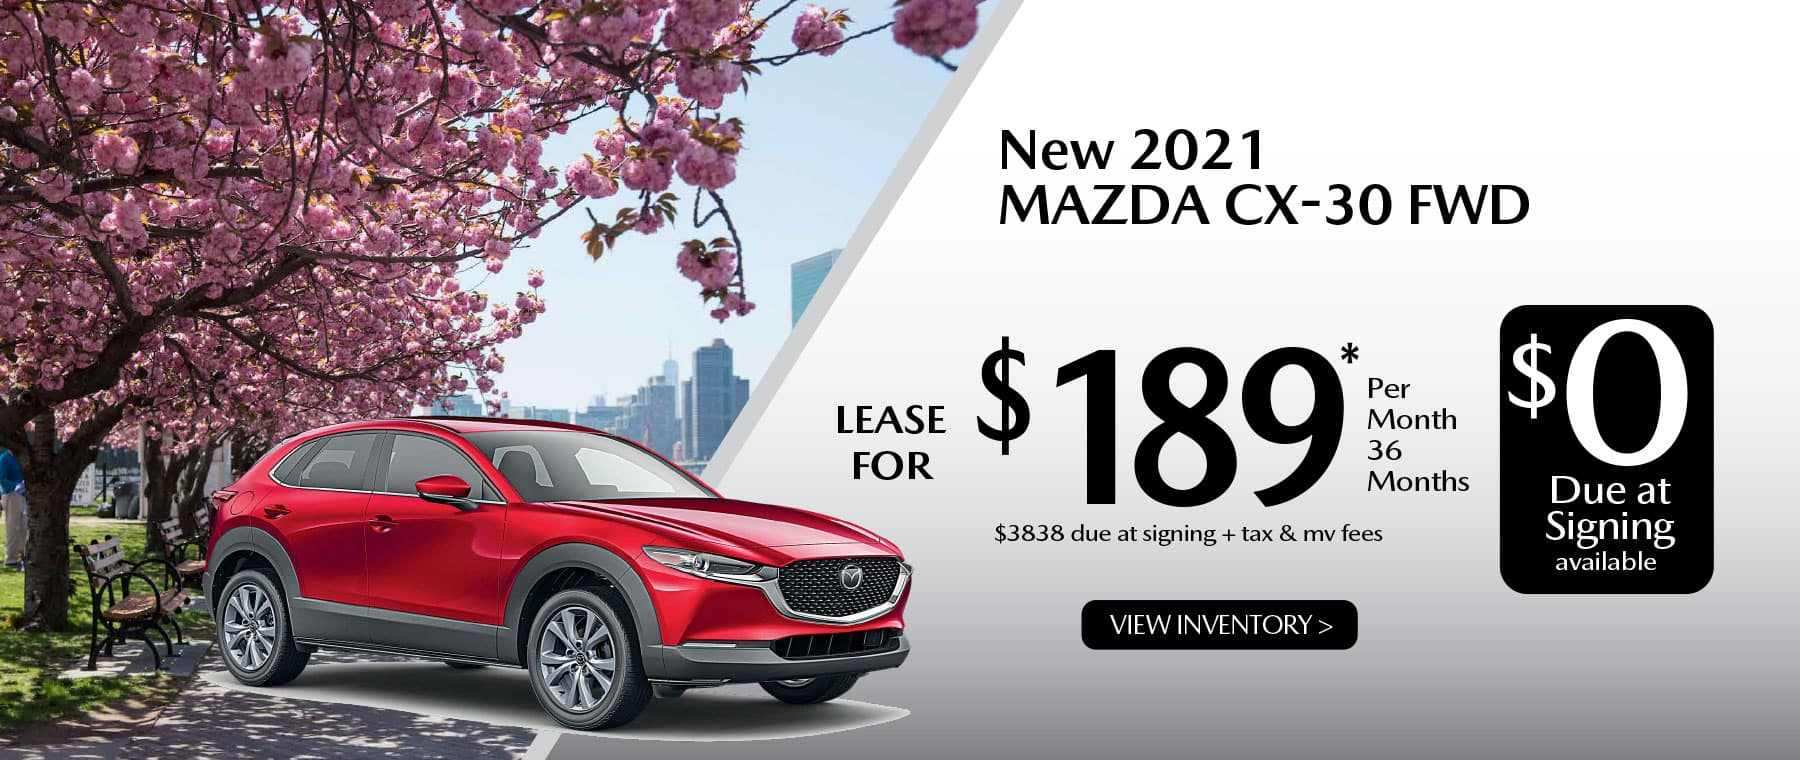 04 CX-30 hi New Lease Special Offer Garden City Mazda NY